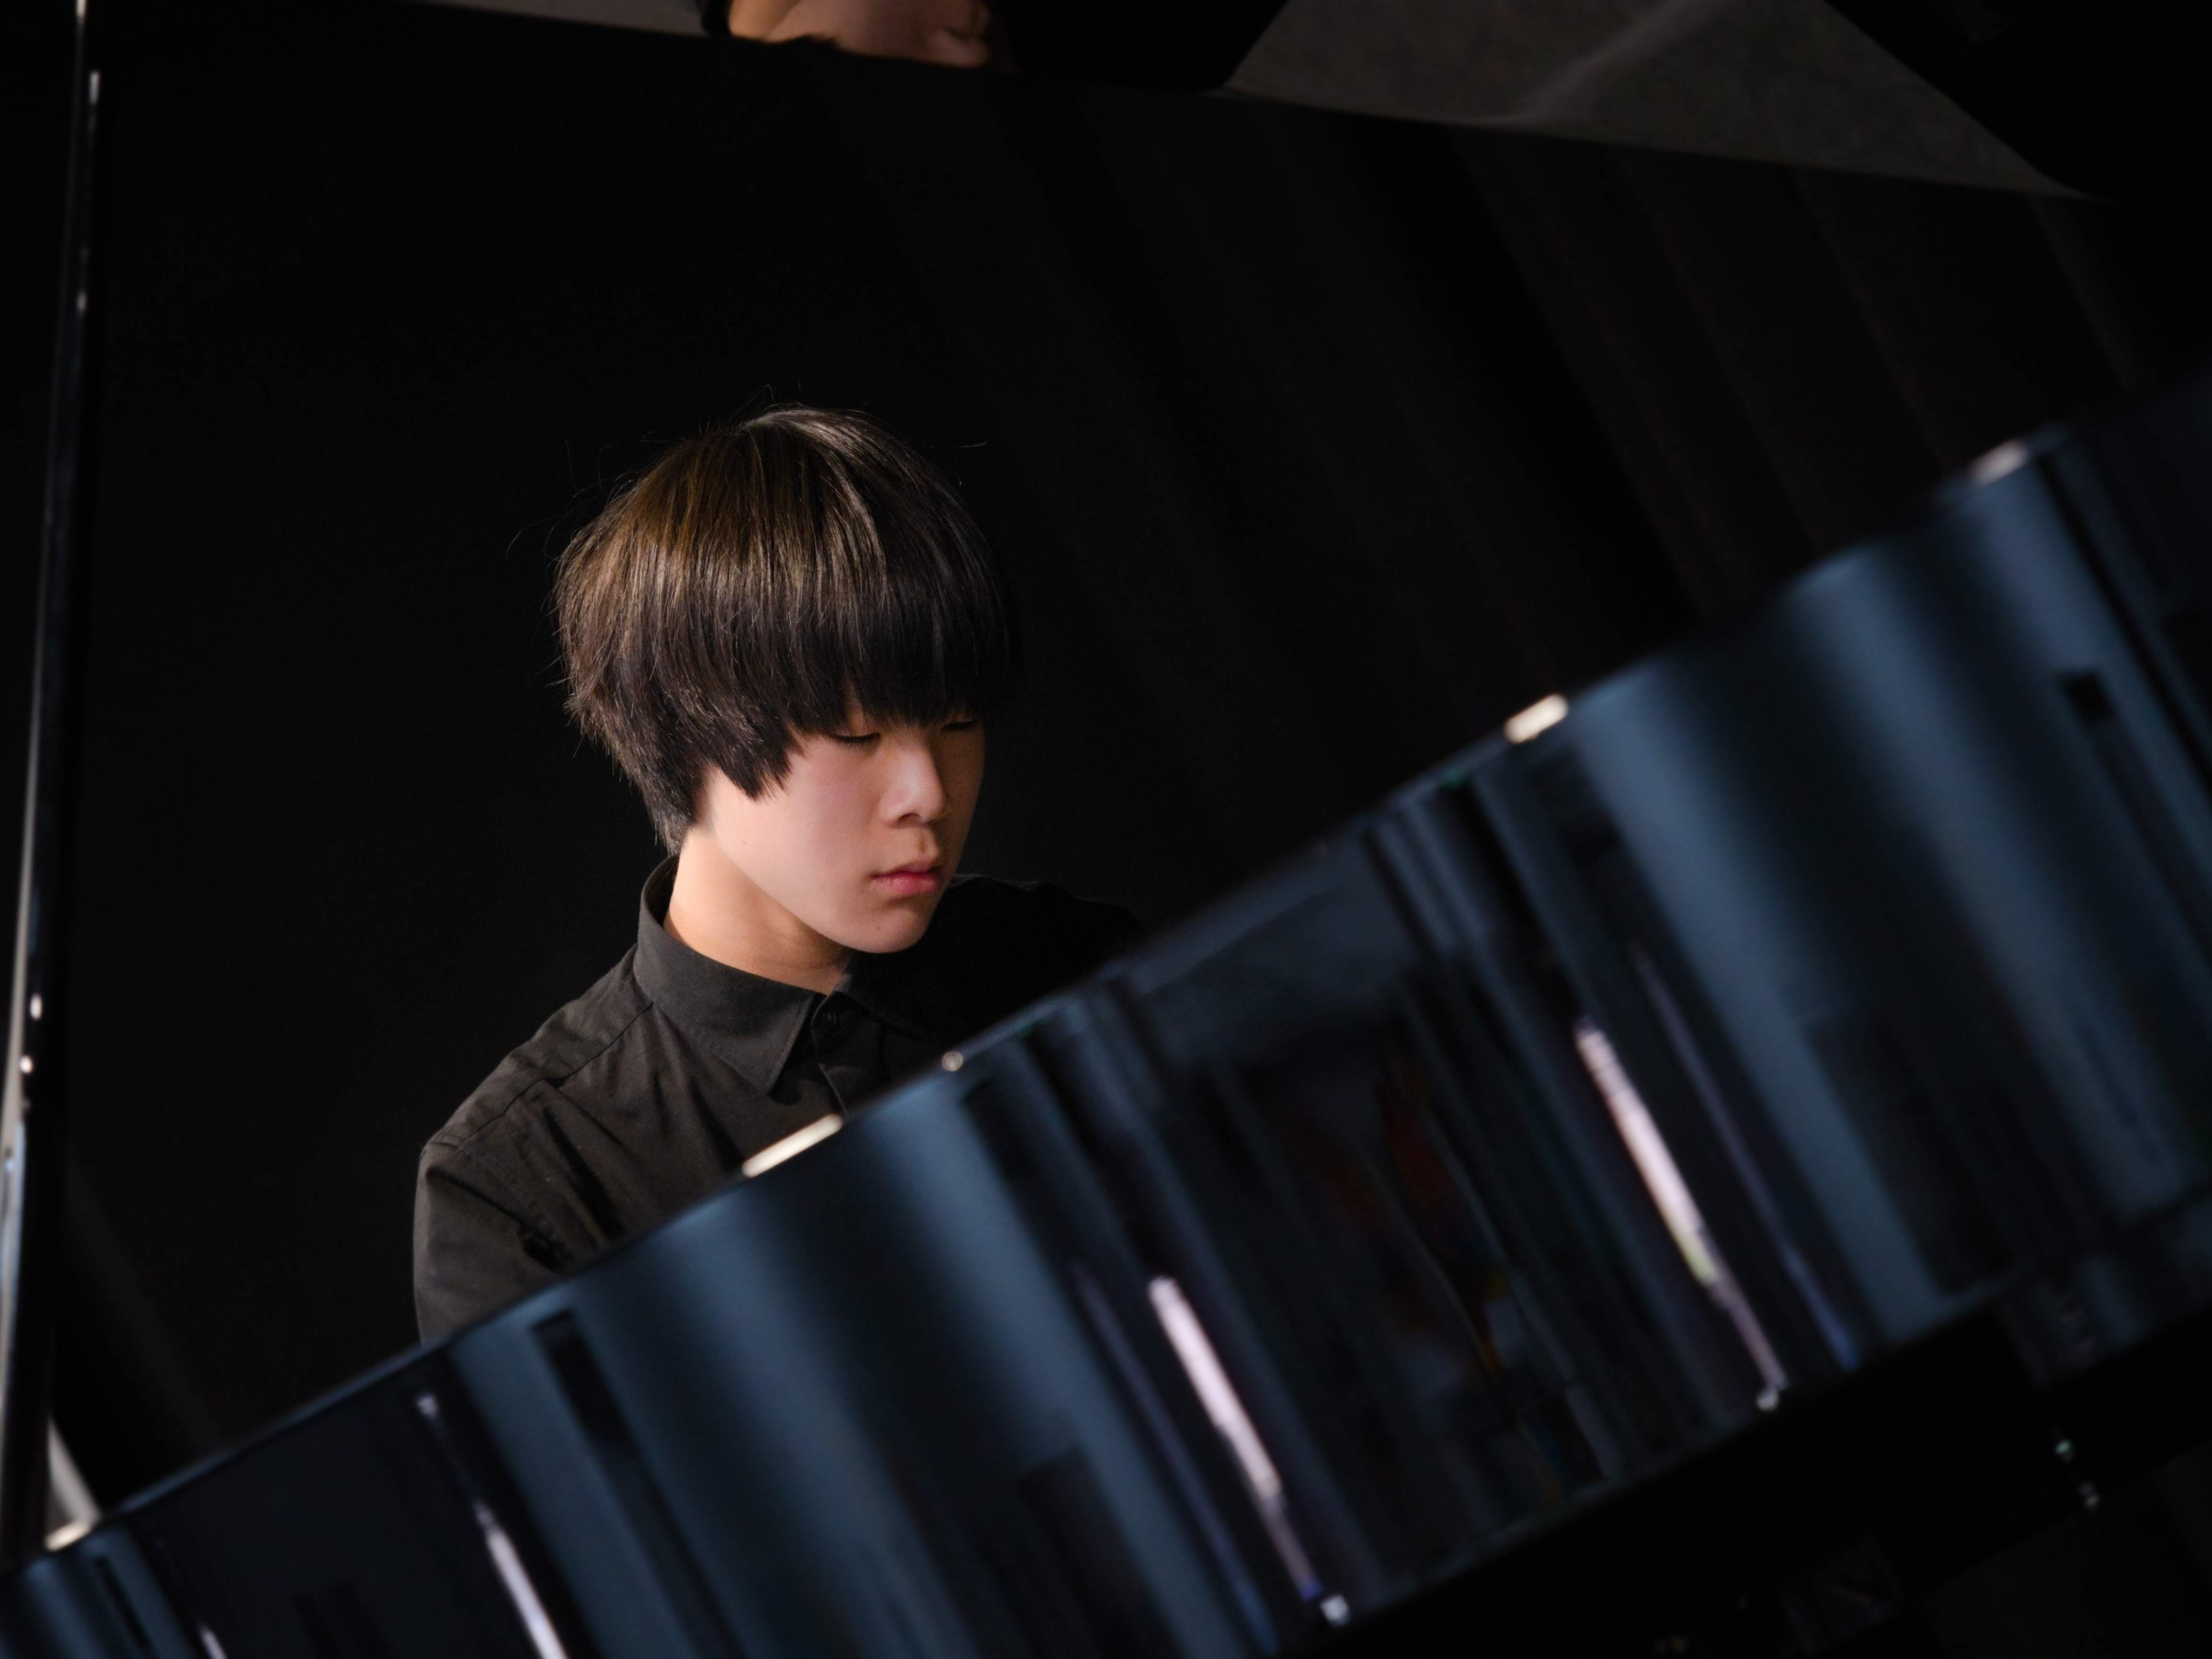 WGE Pianoforte Day 4 Max Jiang Performs on the Piano